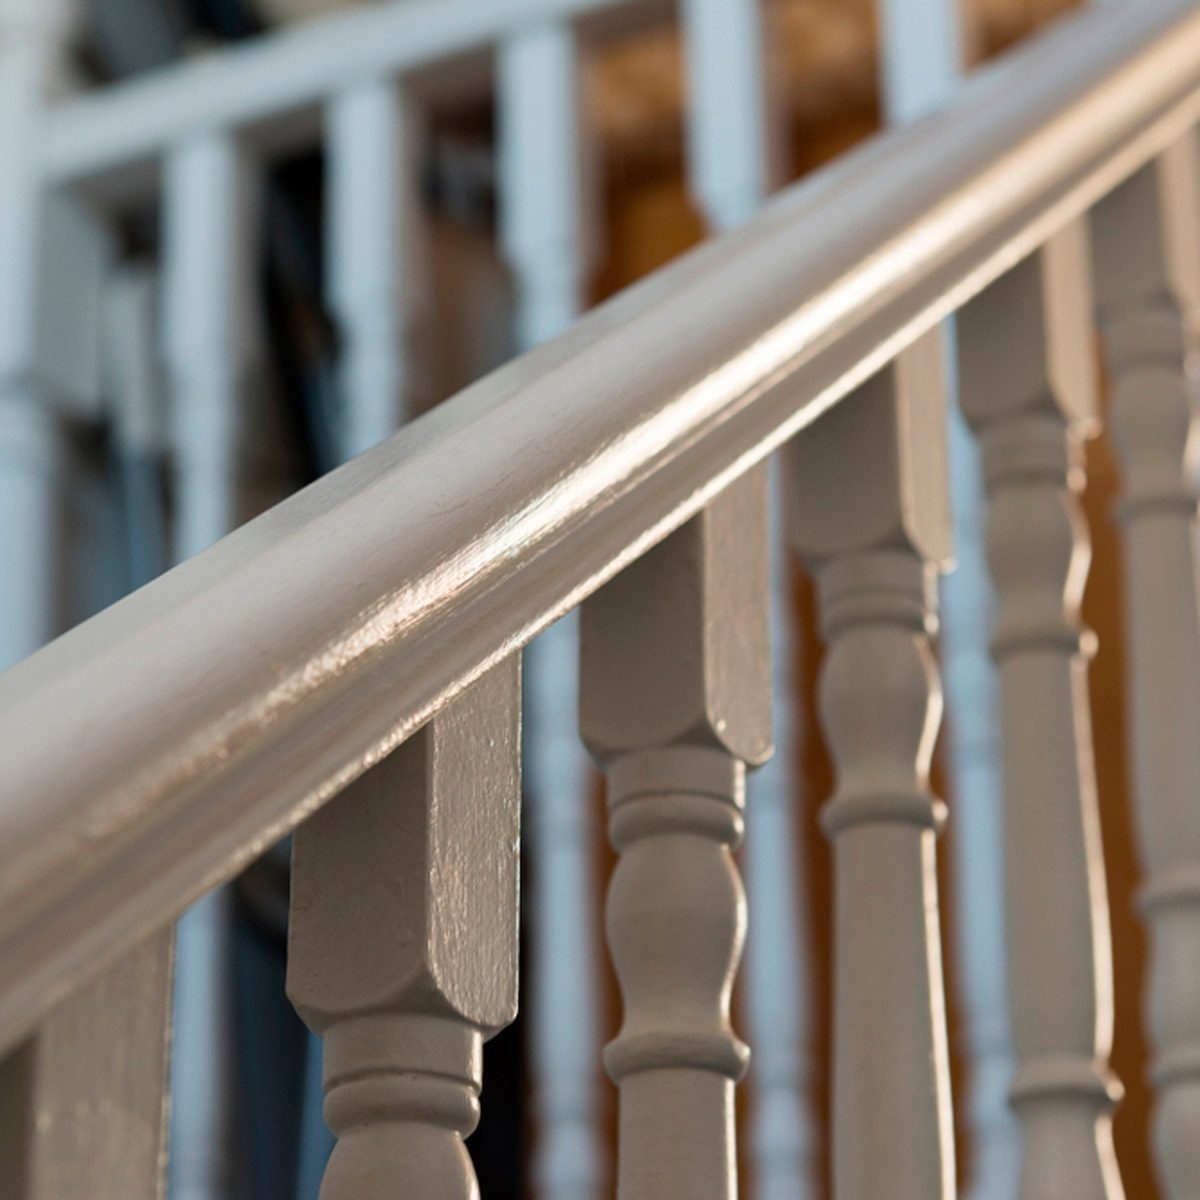 10 Ways To Freshen Up Outdated Banisters Family Handyman   Black Banister With White Spindles   Round   Antique   Finished Painted Stair   Oak Handrail Basket   Brazilian Cherry Stair